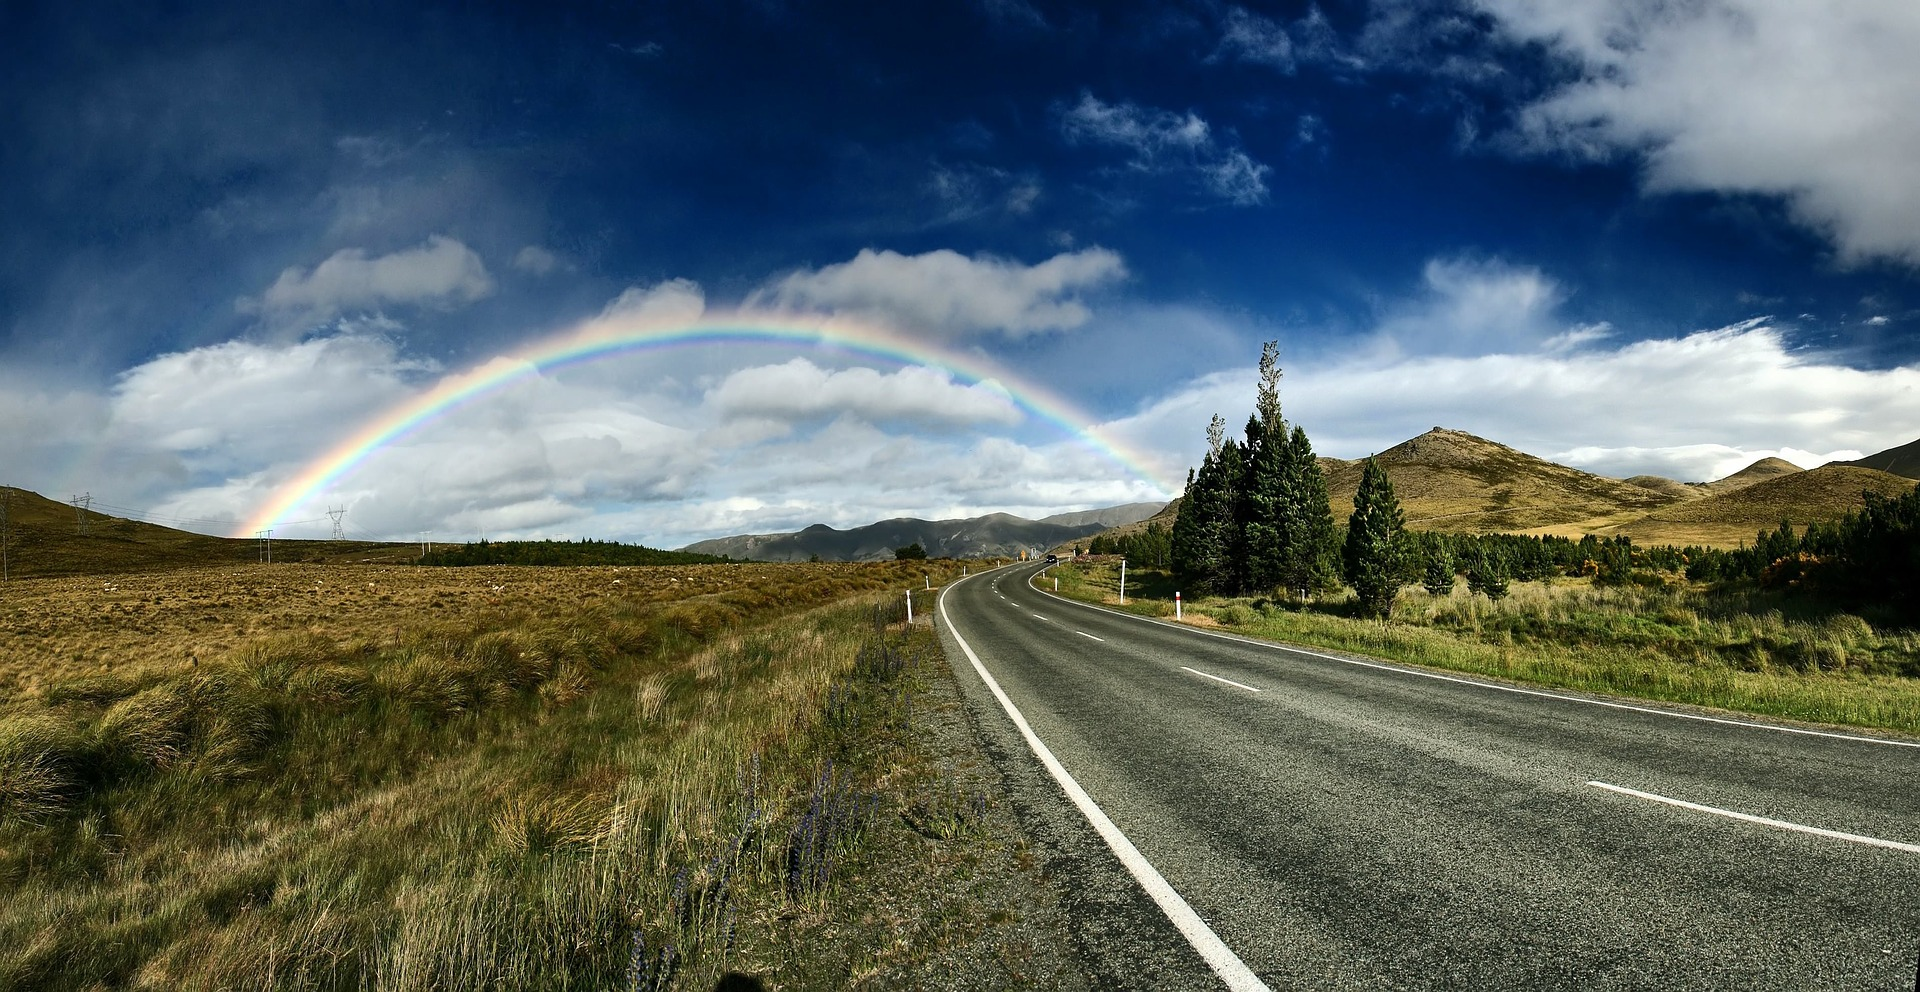 totd_121316_rainbow_background_338555860.jpg